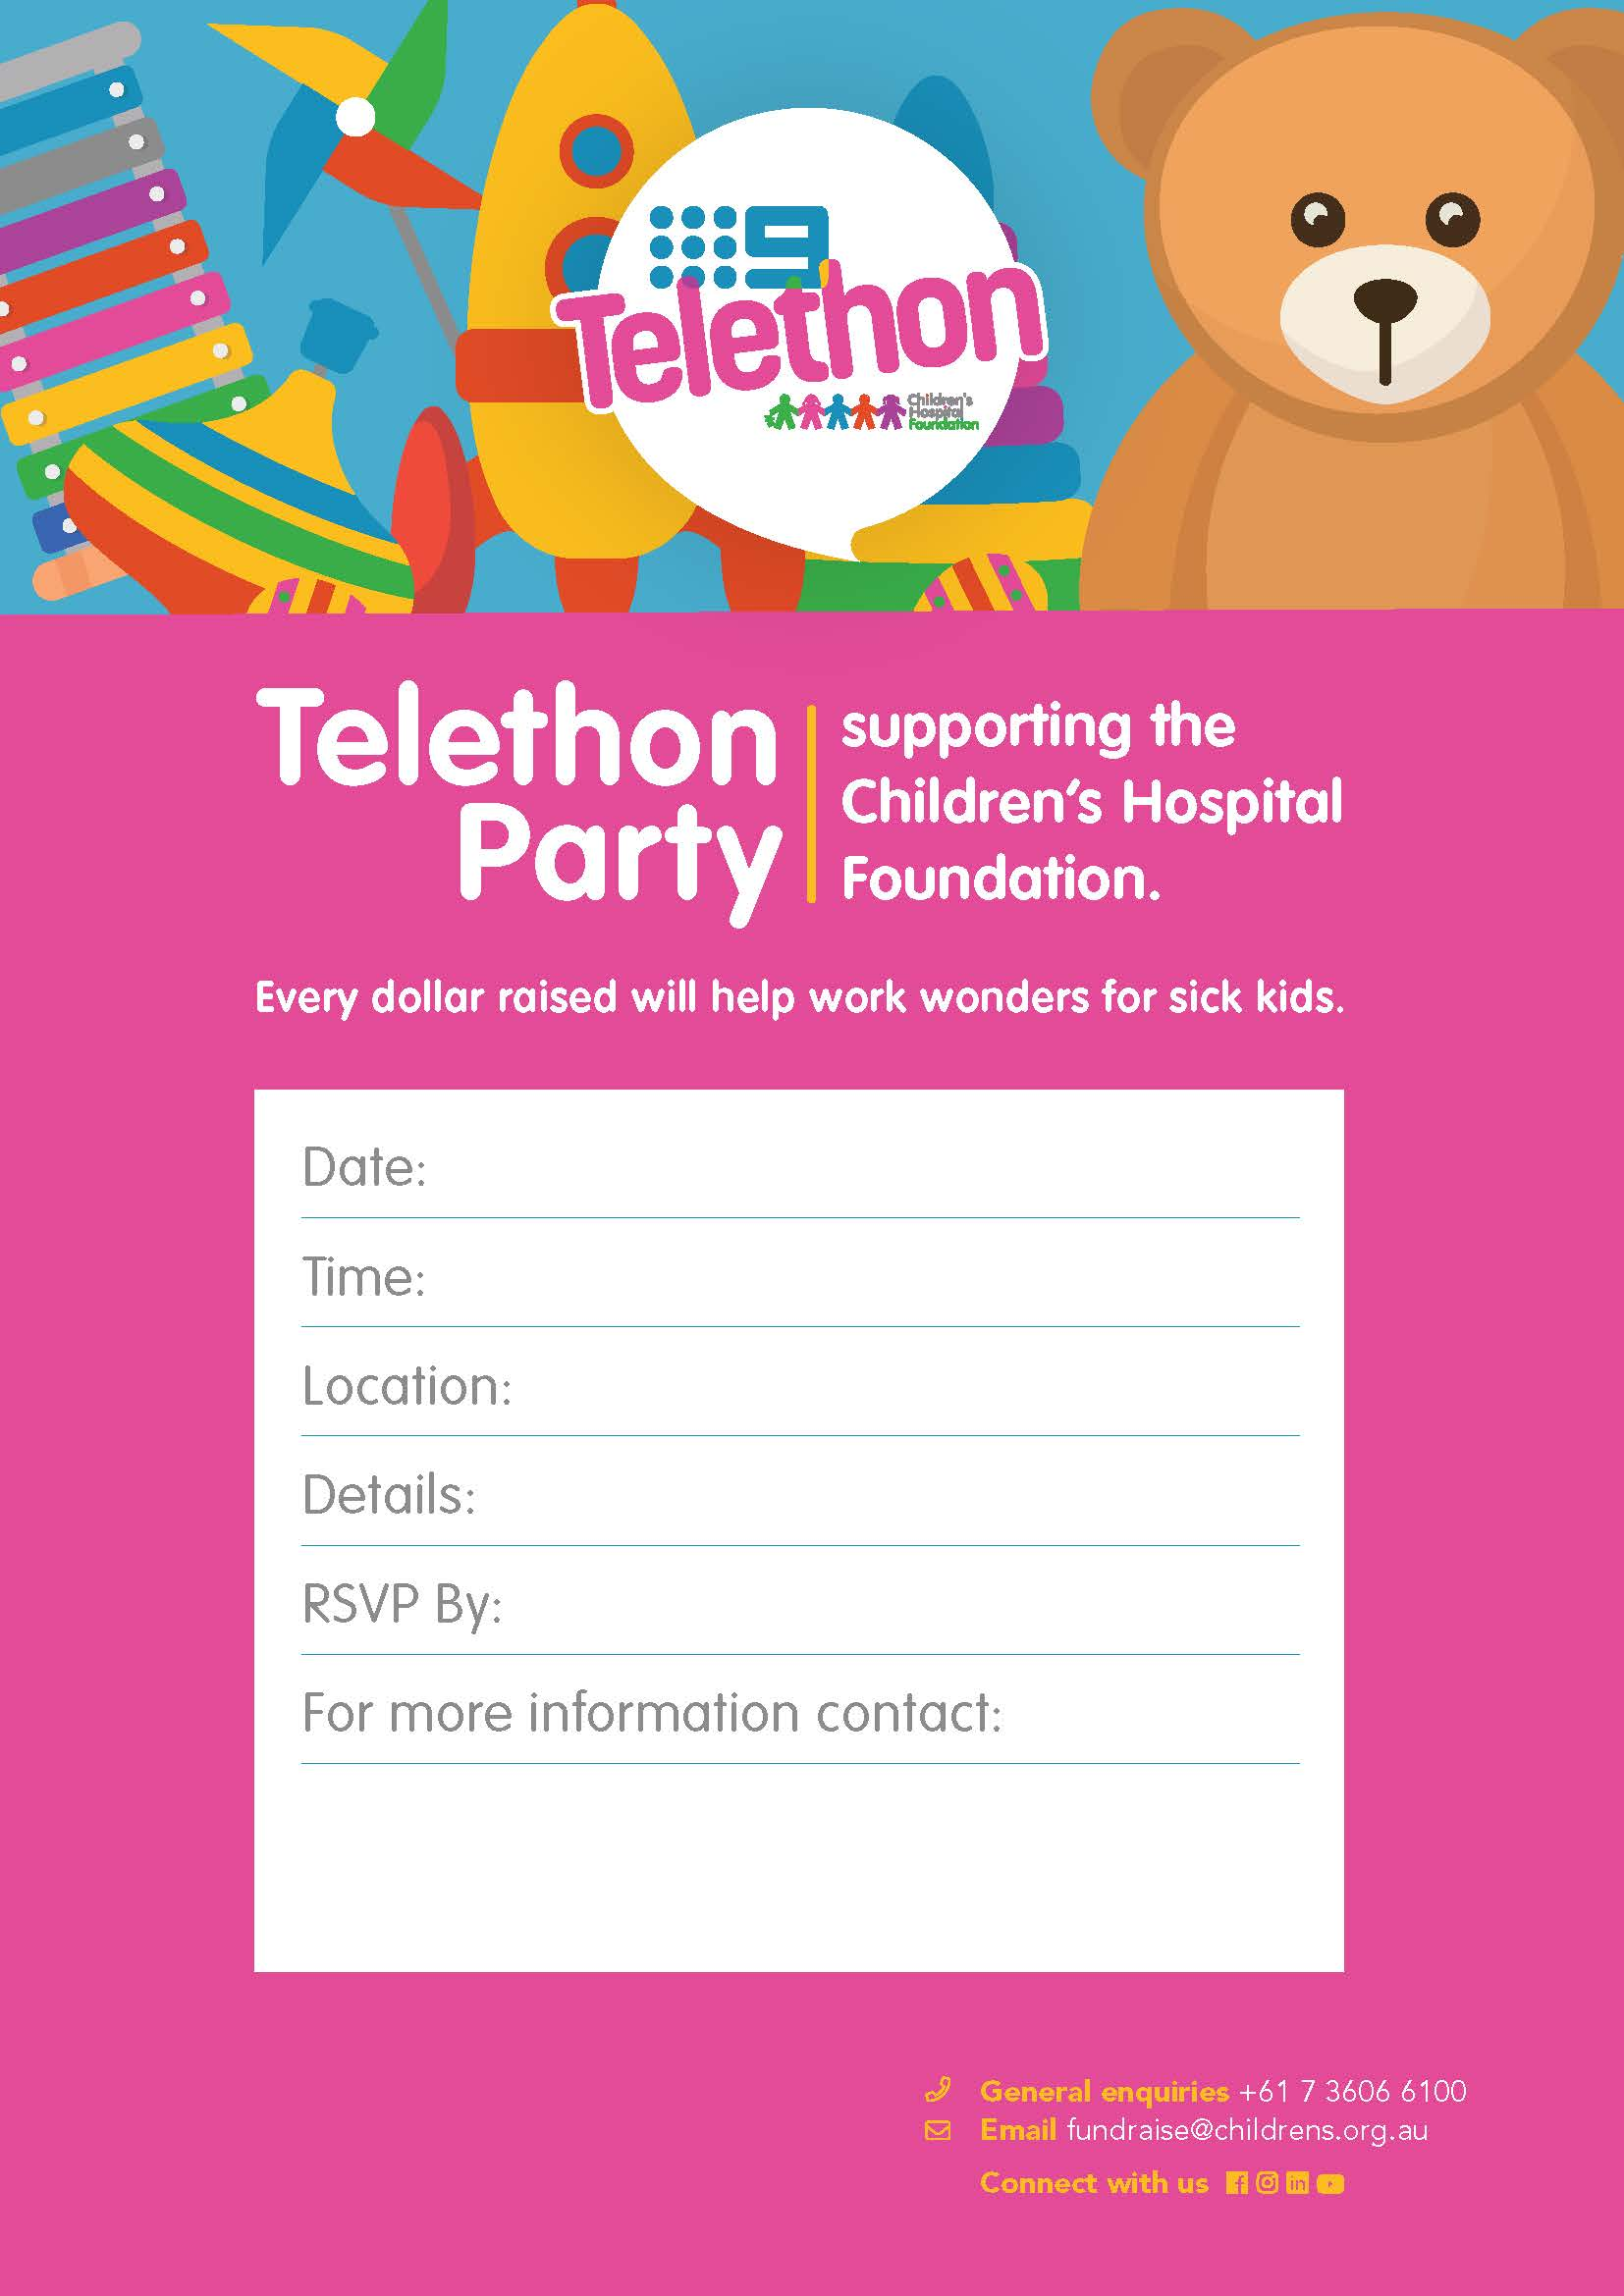 Telethon Party Promotion Invitation Poster 2